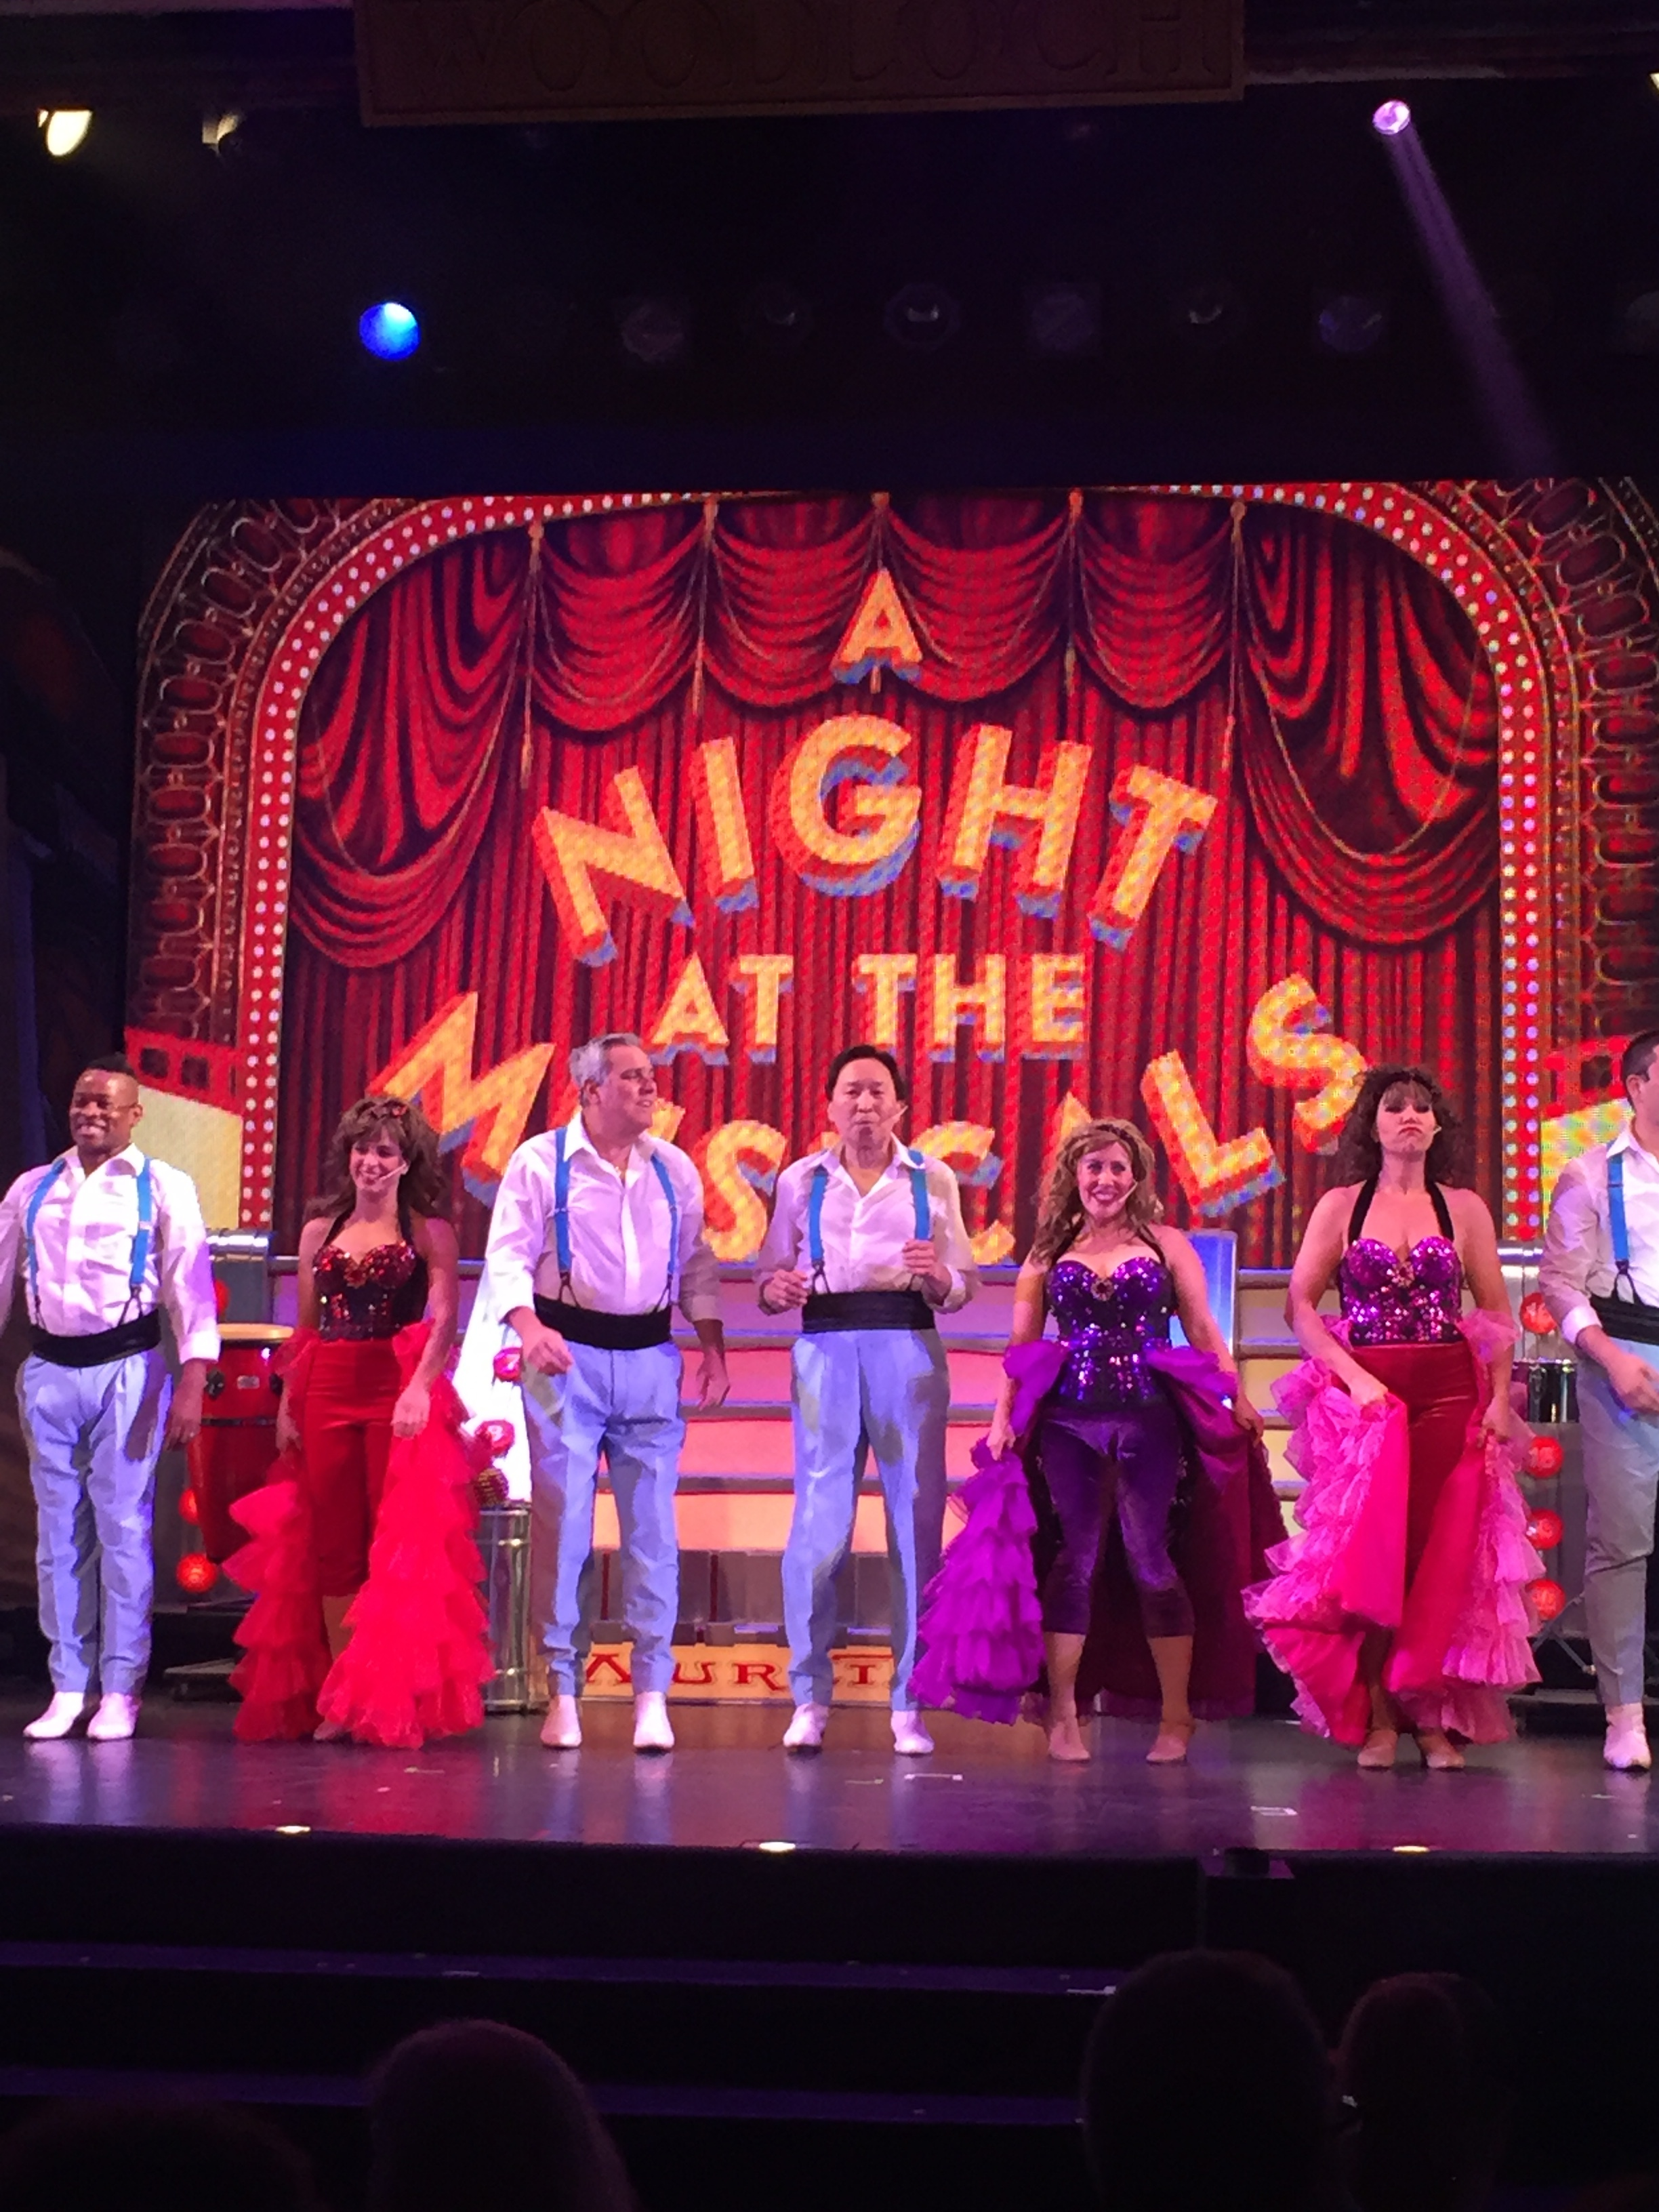 Evening entertainment - A Night At the Musicals